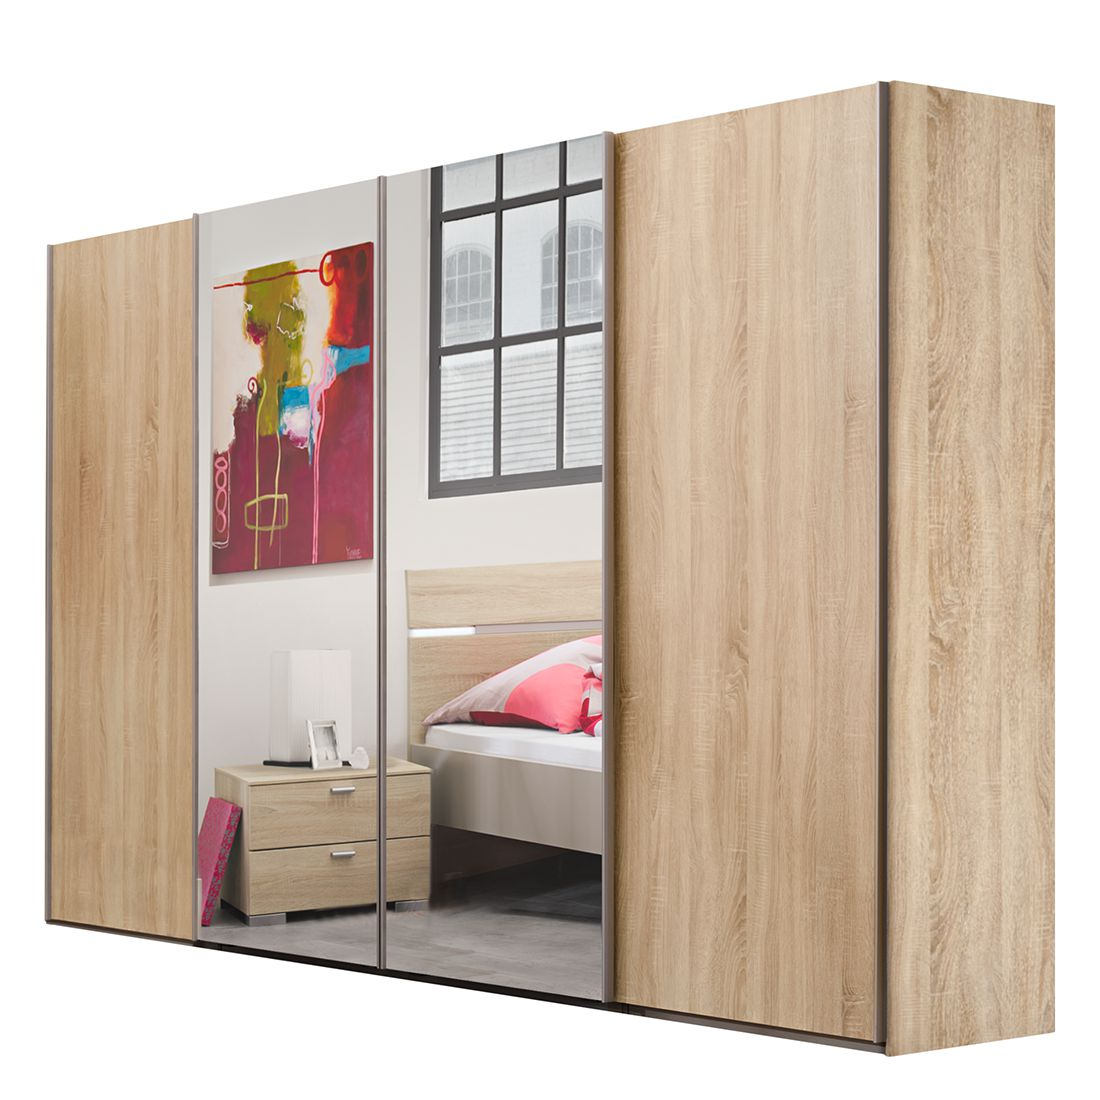 schwebet renschrank relax i wei steingrau schrankbreite 312 cm 2 t rig arte m jetzt kaufen. Black Bedroom Furniture Sets. Home Design Ideas